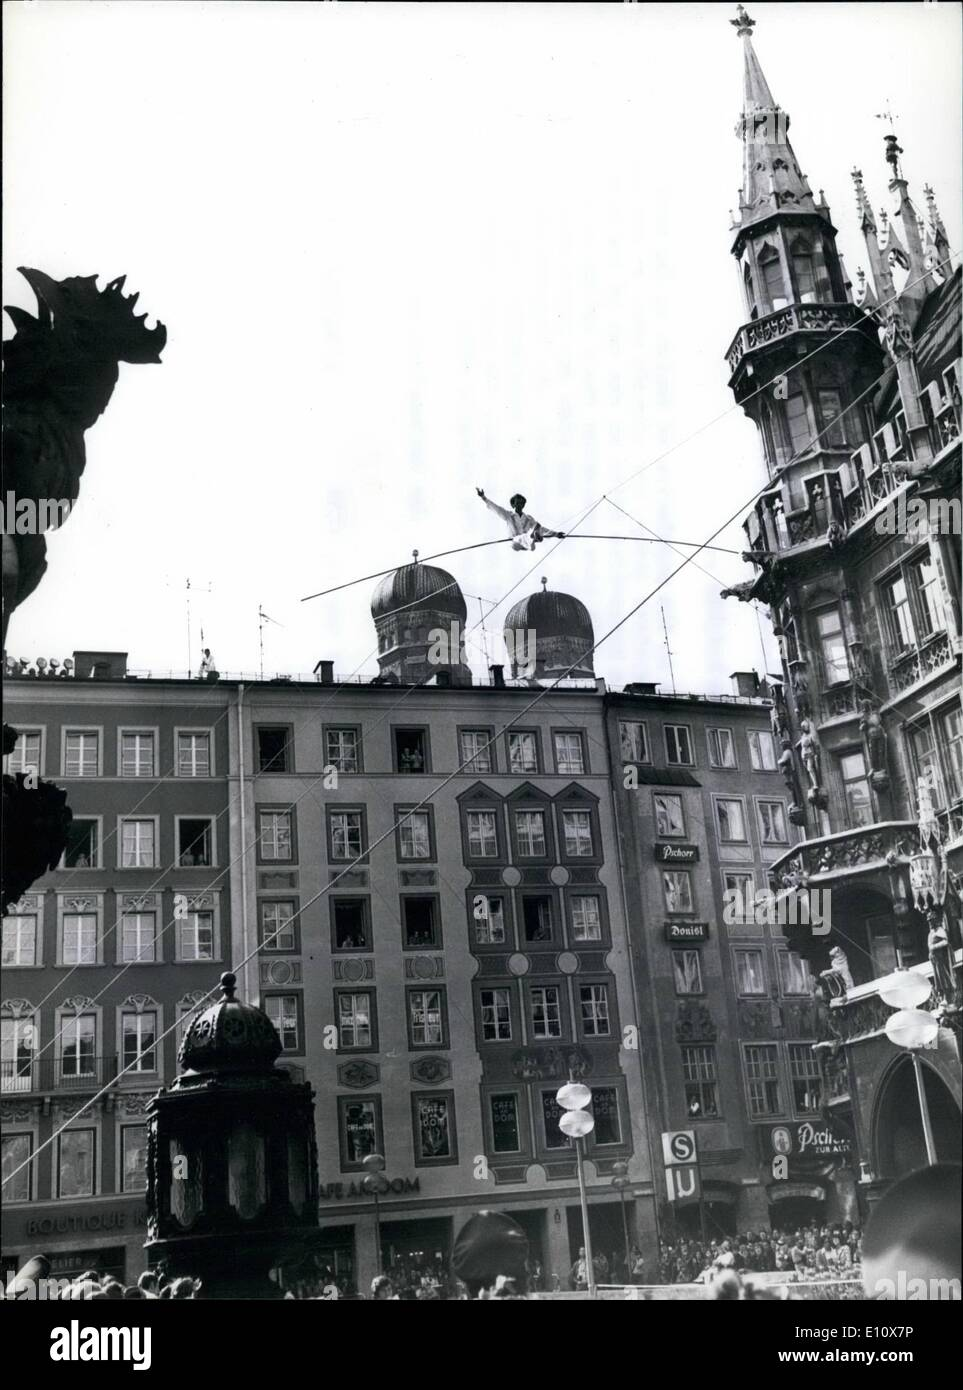 May 05, 1974 - Act on the High Wire Across the Marienplace in Munich.Acrobatic in 50 m heights... ... were presented to the population of Munich on the week end. The ''Oskanis'', an artiste group, who already were an attraction last year showing a motor bike drive on top of the television serial mast, this time presented their trick on the wire on the Marienplace. On foot and with the motor bike they resched the cupola of Munich's landmark, the Frauenkirche - Stock Image